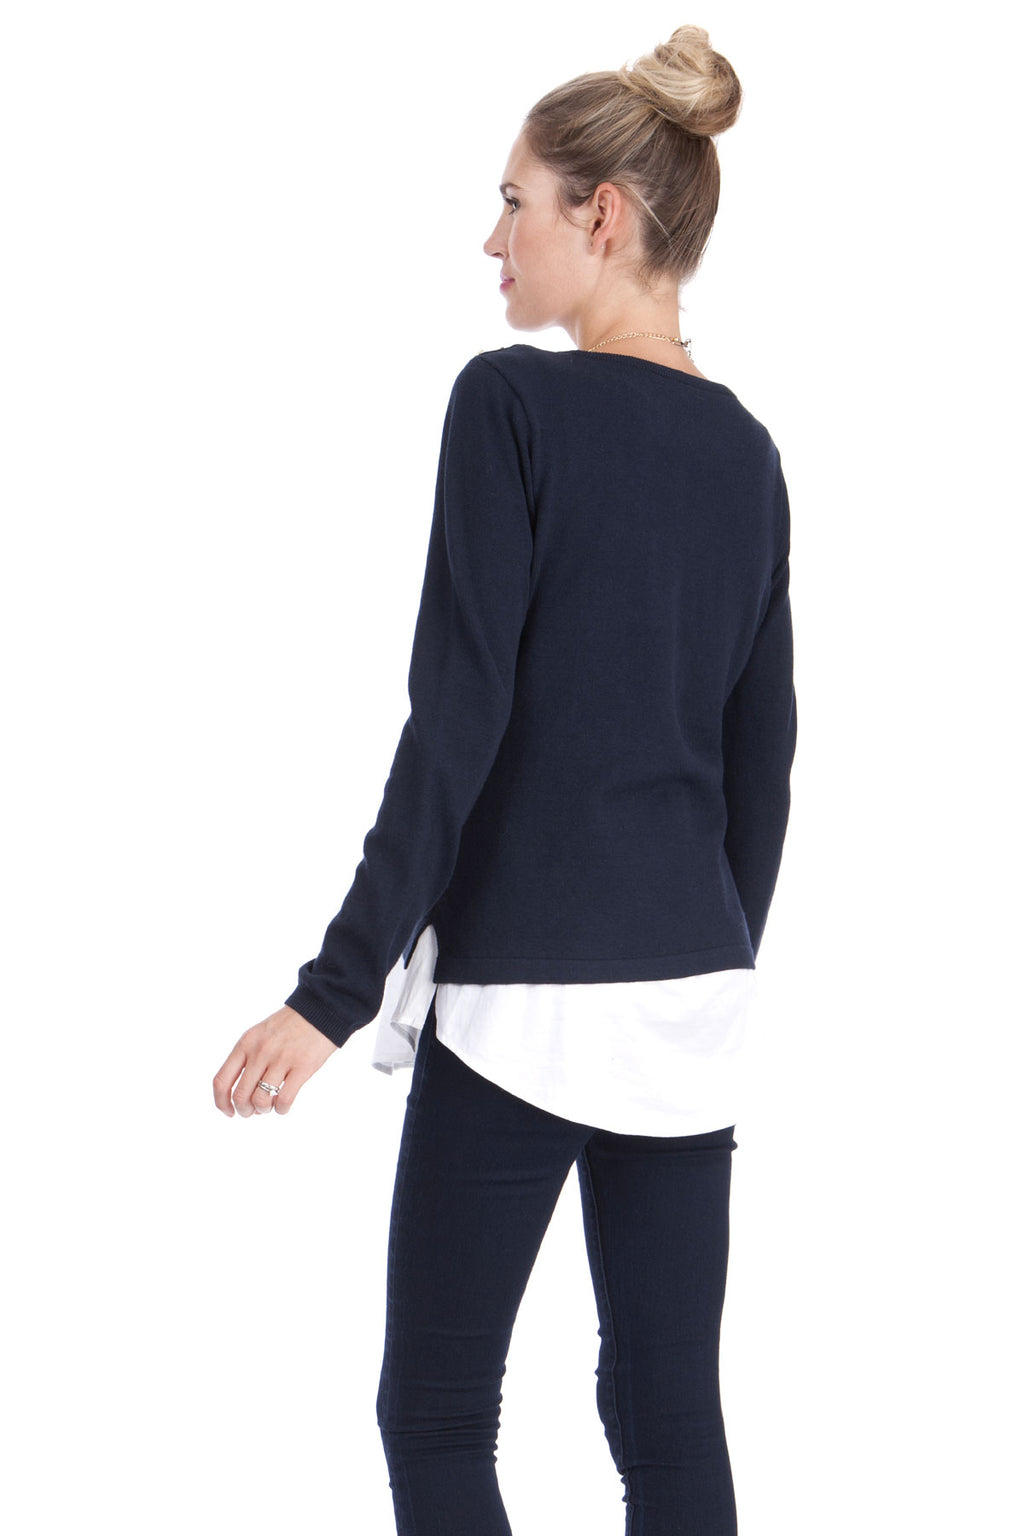 Seraphine Alanis Mock Shirt Nursing Sweater - Seven Women Maternity